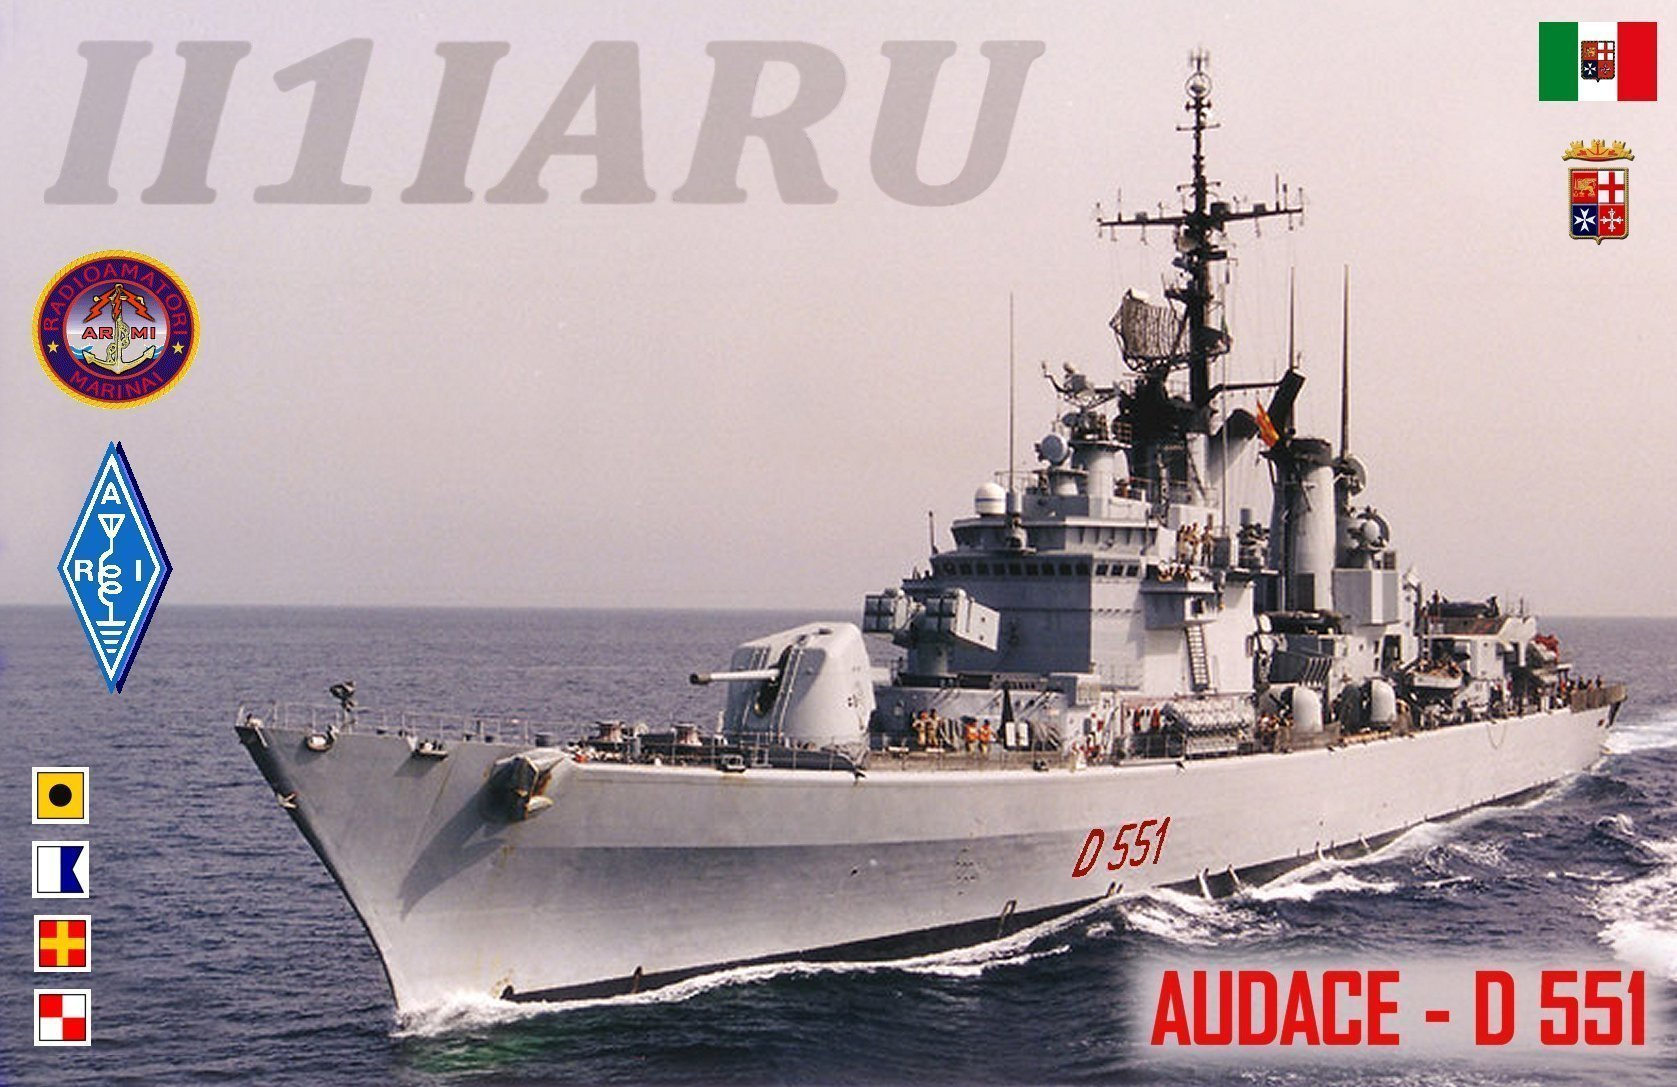 QSL image for II1IARU